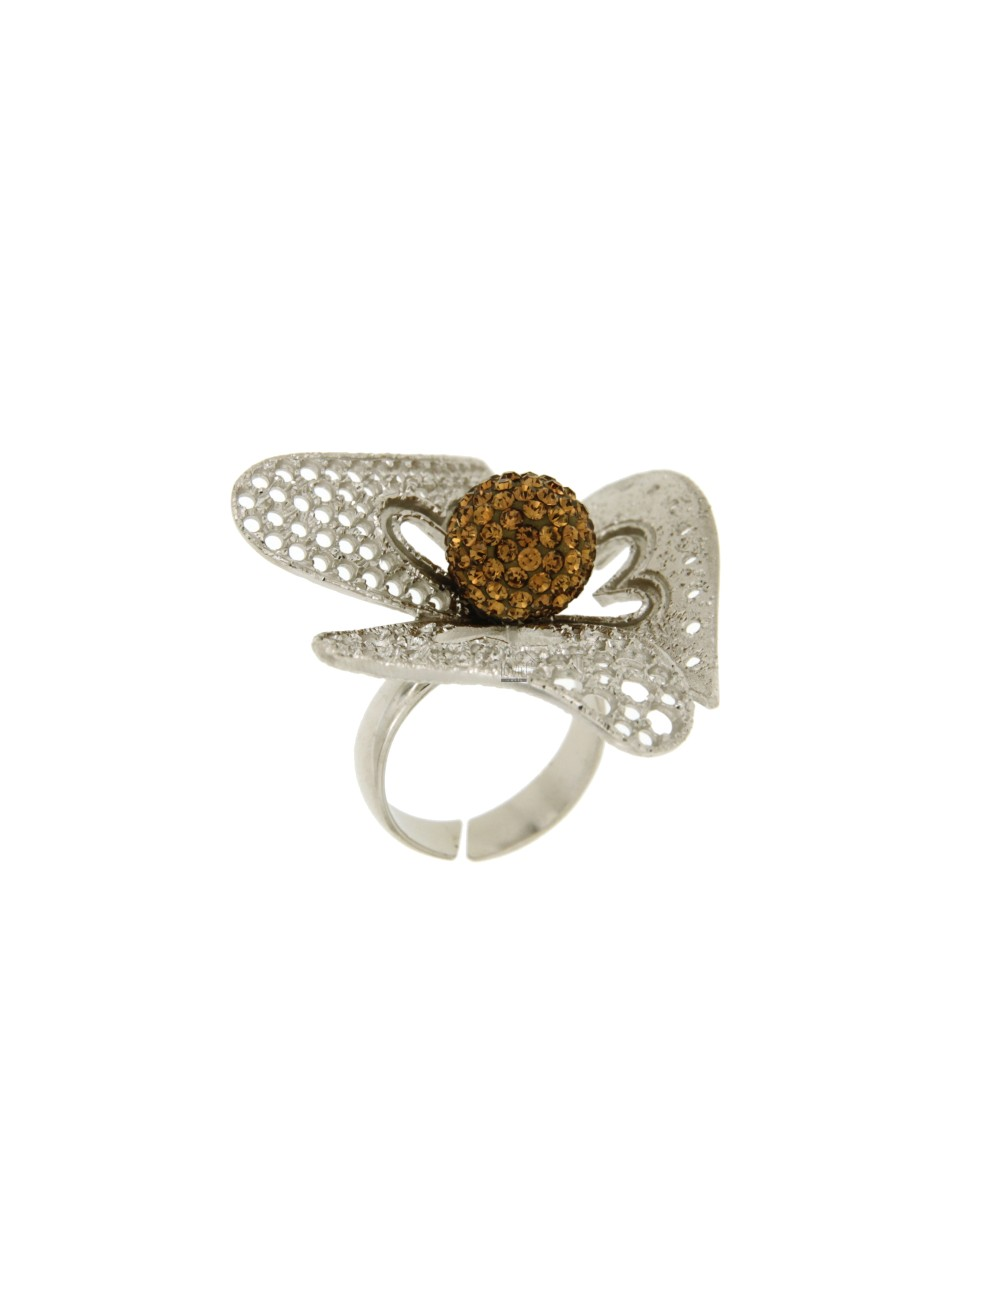 THREE RING FLOWER PETALS AND DIAMOND PERFORATED IN RHODIUM AG 925 TIT AND BALL AND RESIN CRYSTAL CHAMPAGNE SIZE ADJUSTABLE